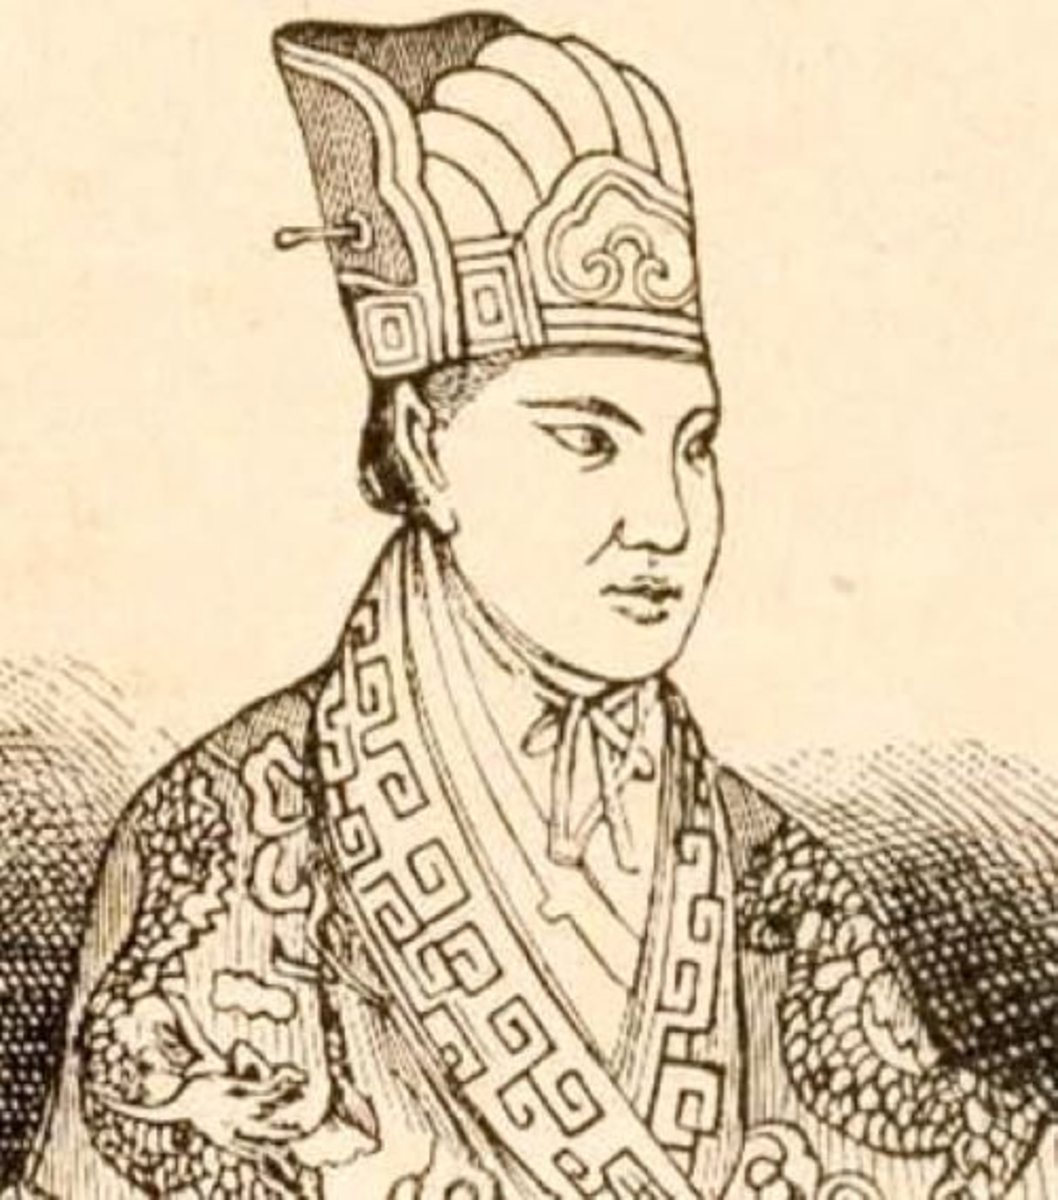 Pictured above is Hong Xiuquan, who served as leader of the Taiping rebels.